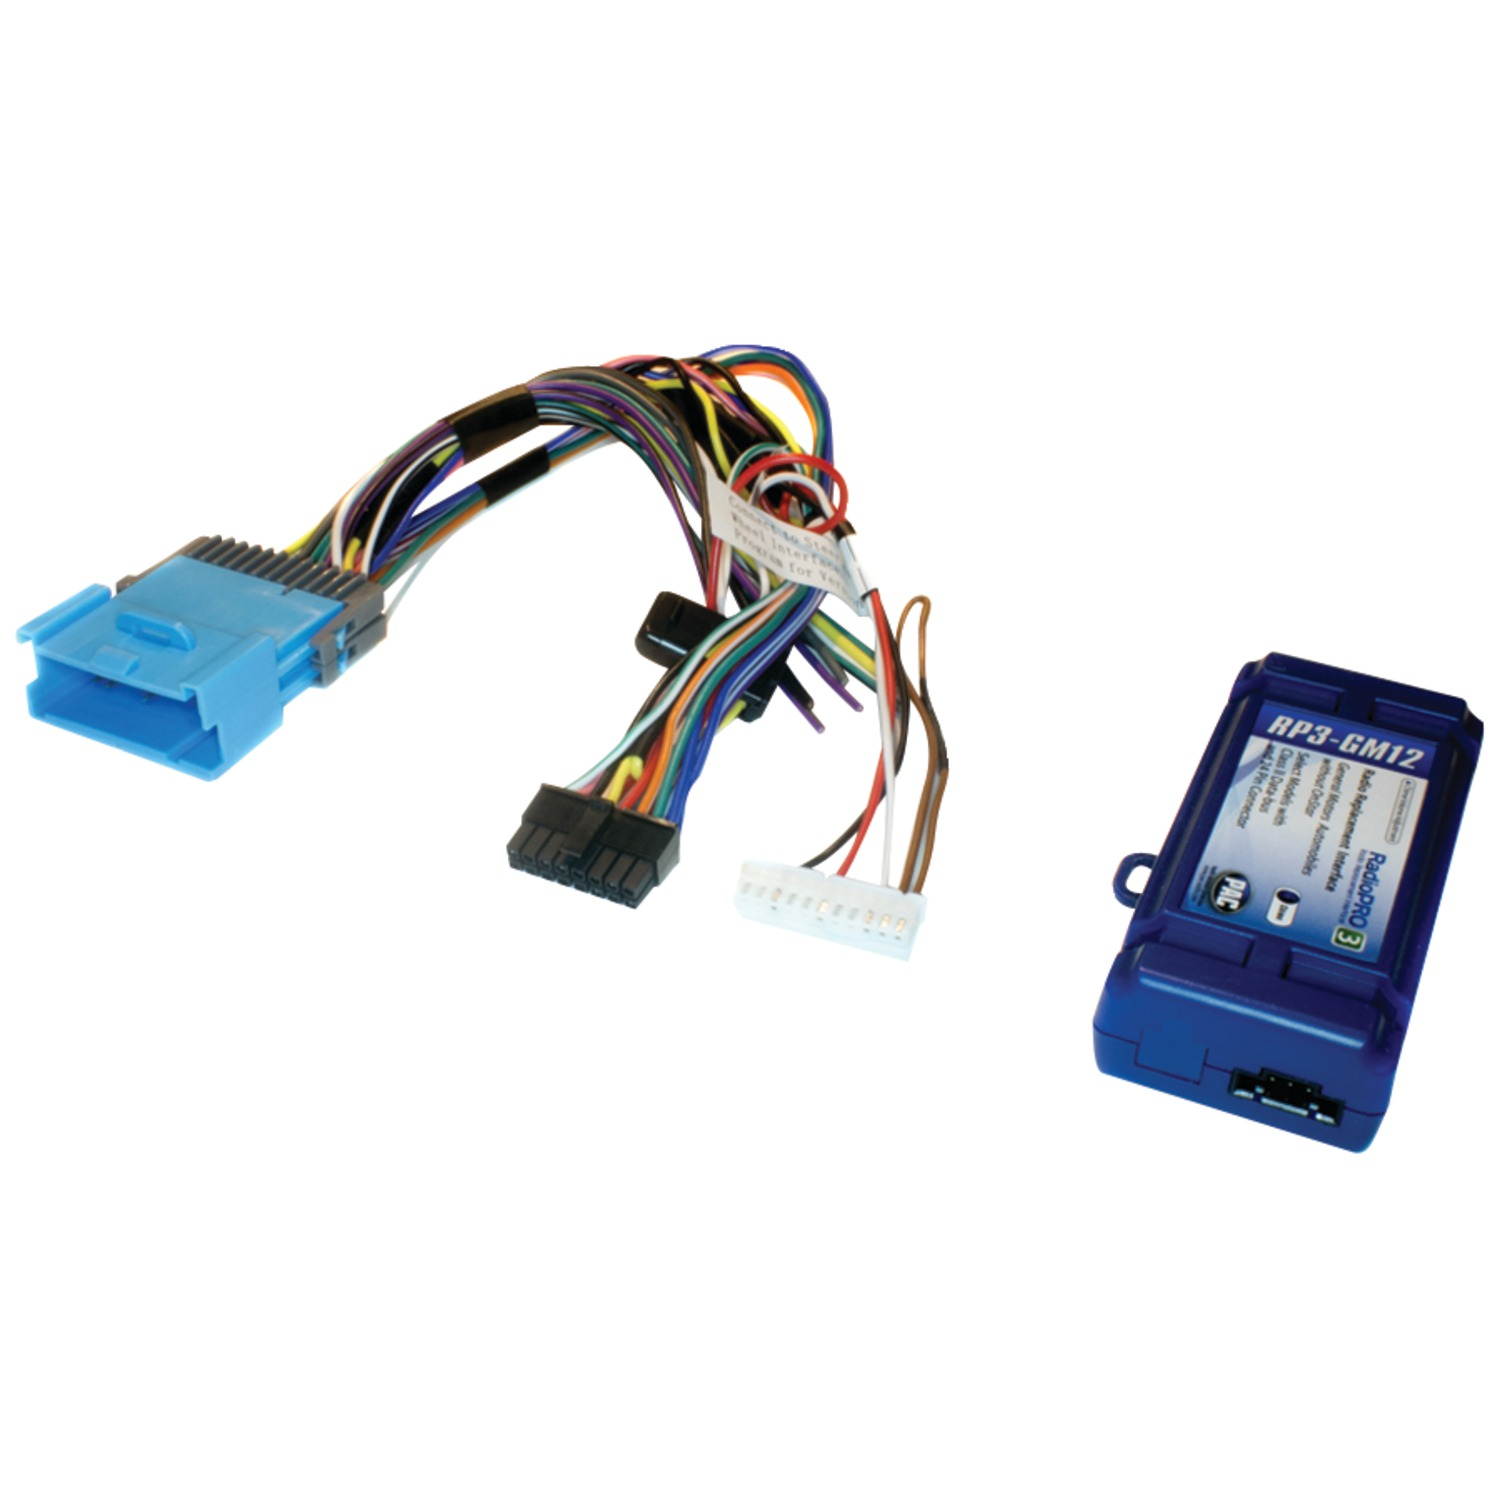 Pac Rp3 Gm12 Radio Replacement Interface For Select Gmr Vehicles 24 Pin Wire Harness Class